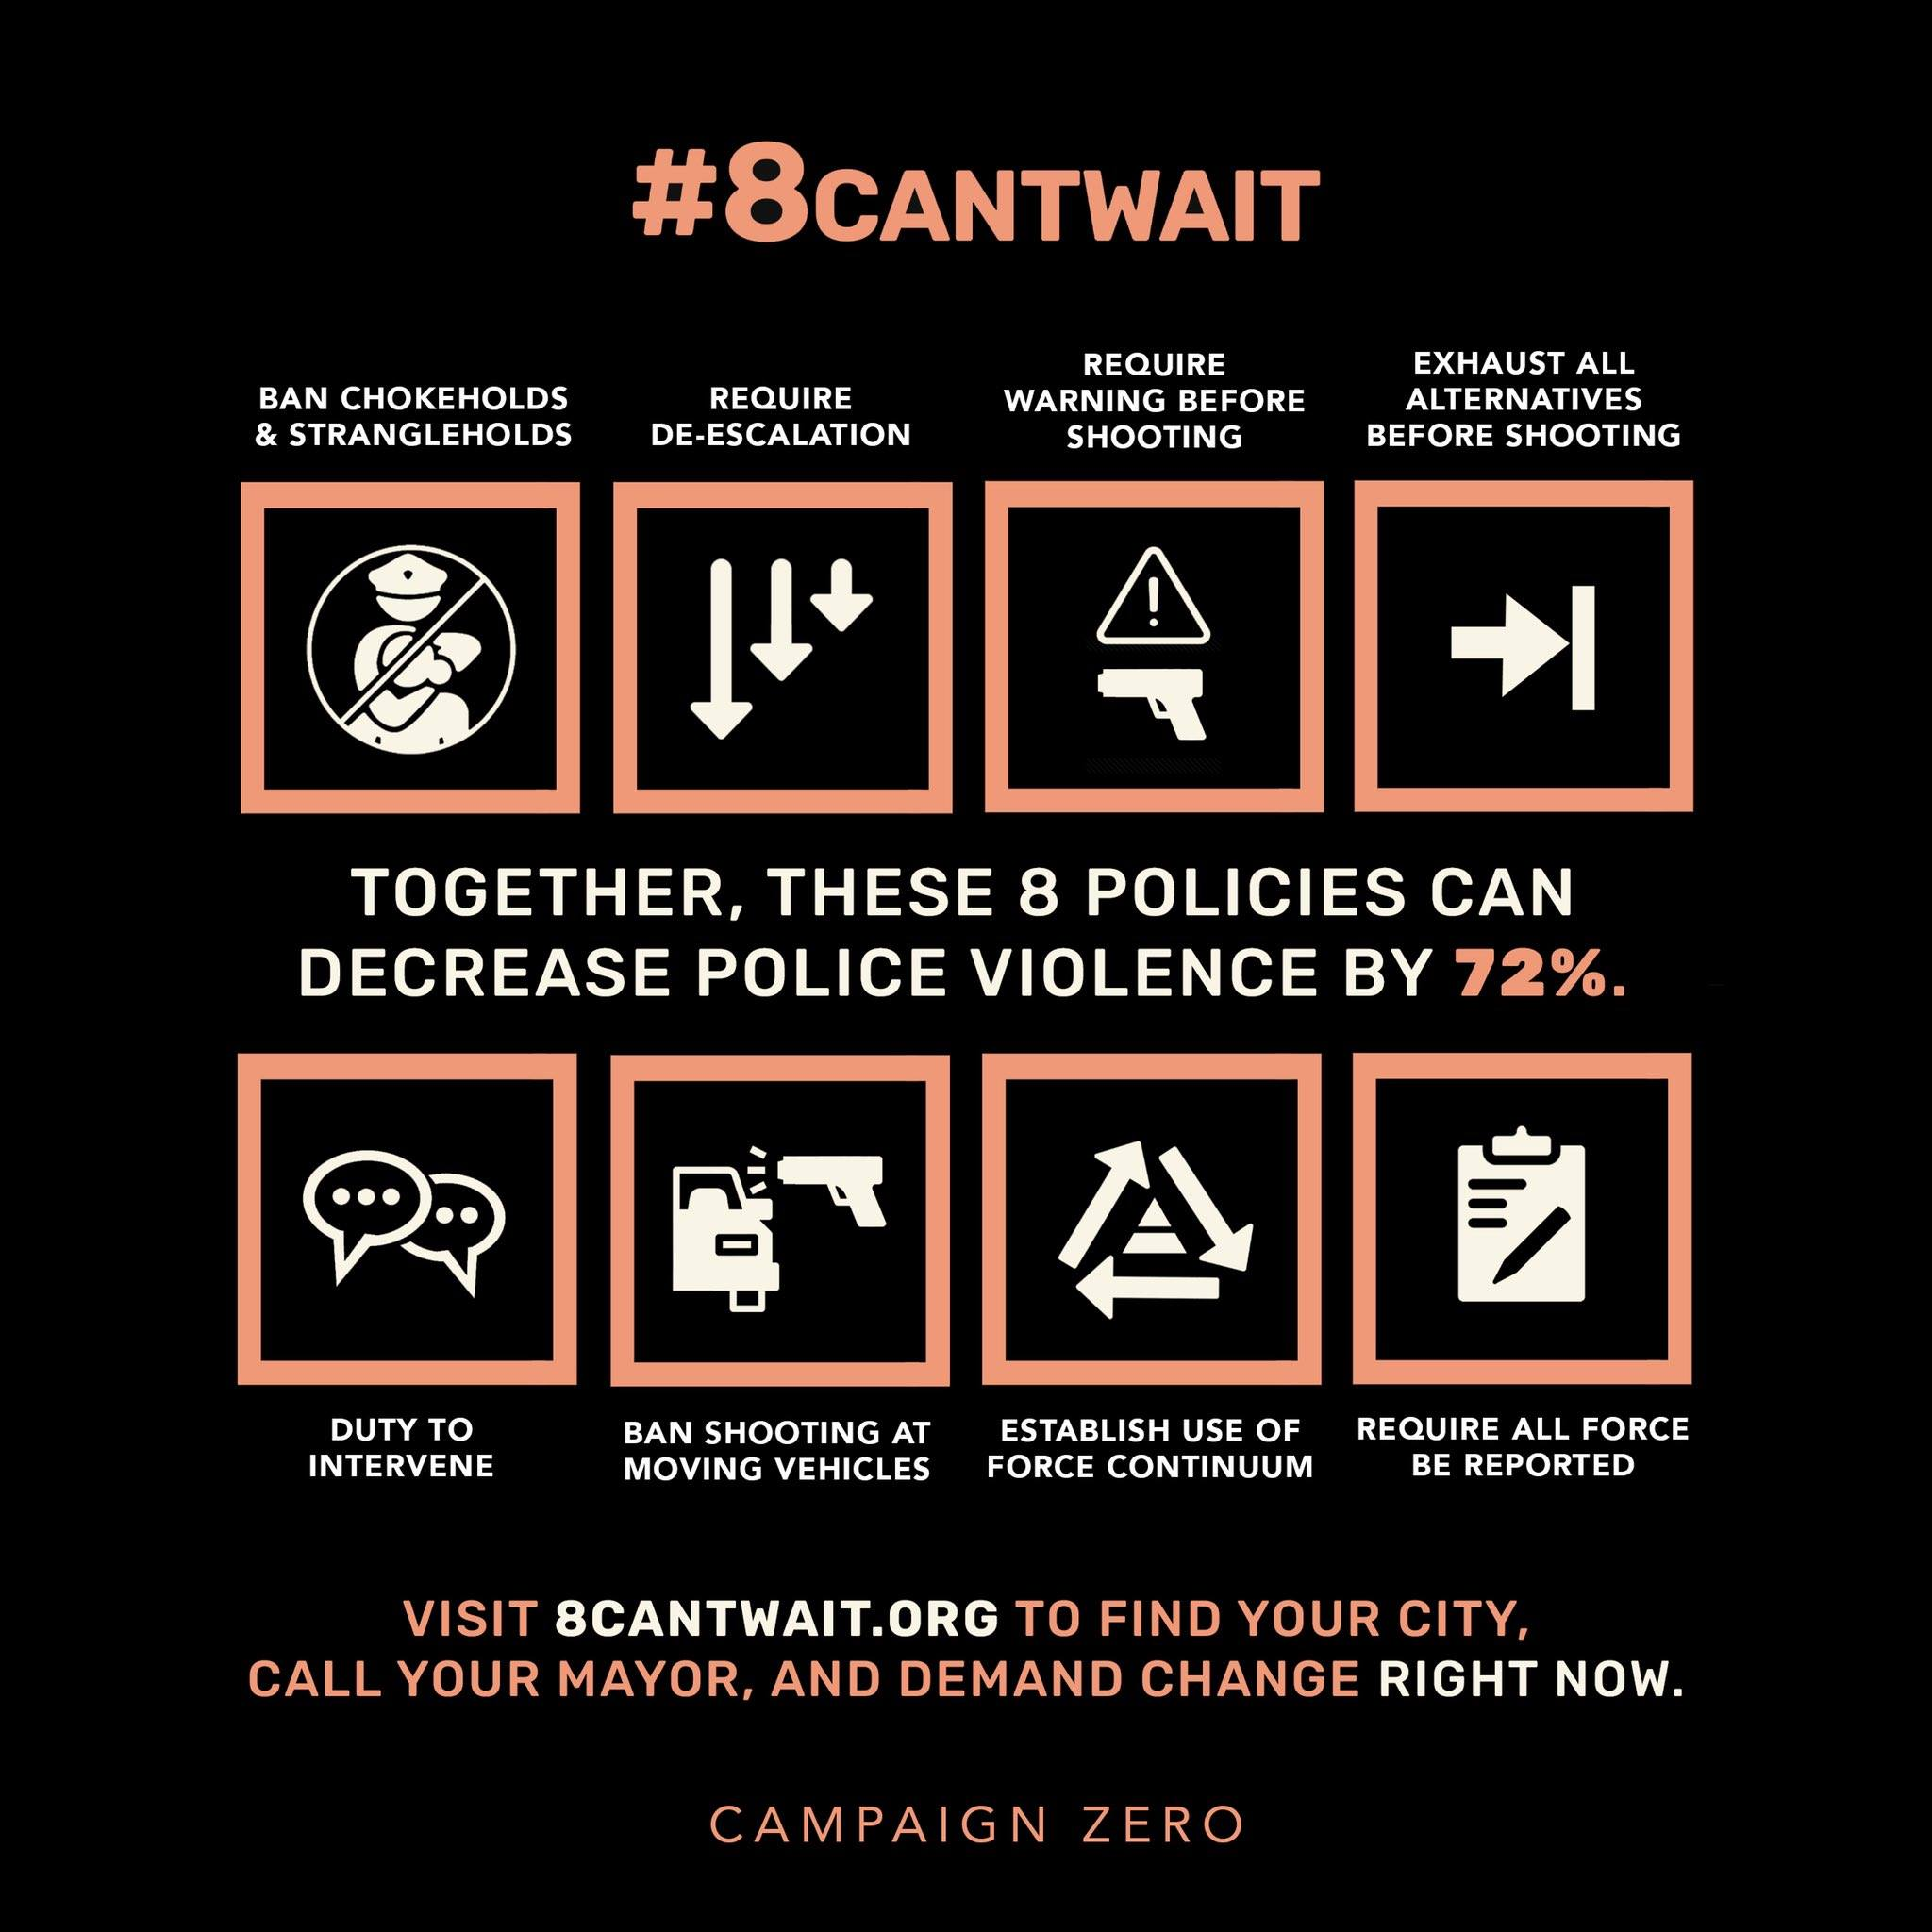 #8CANTWAIT IS A CAMPAIGN TO BRING IMMEDIATE CHANGE TO POLICE DEPARTMENTS